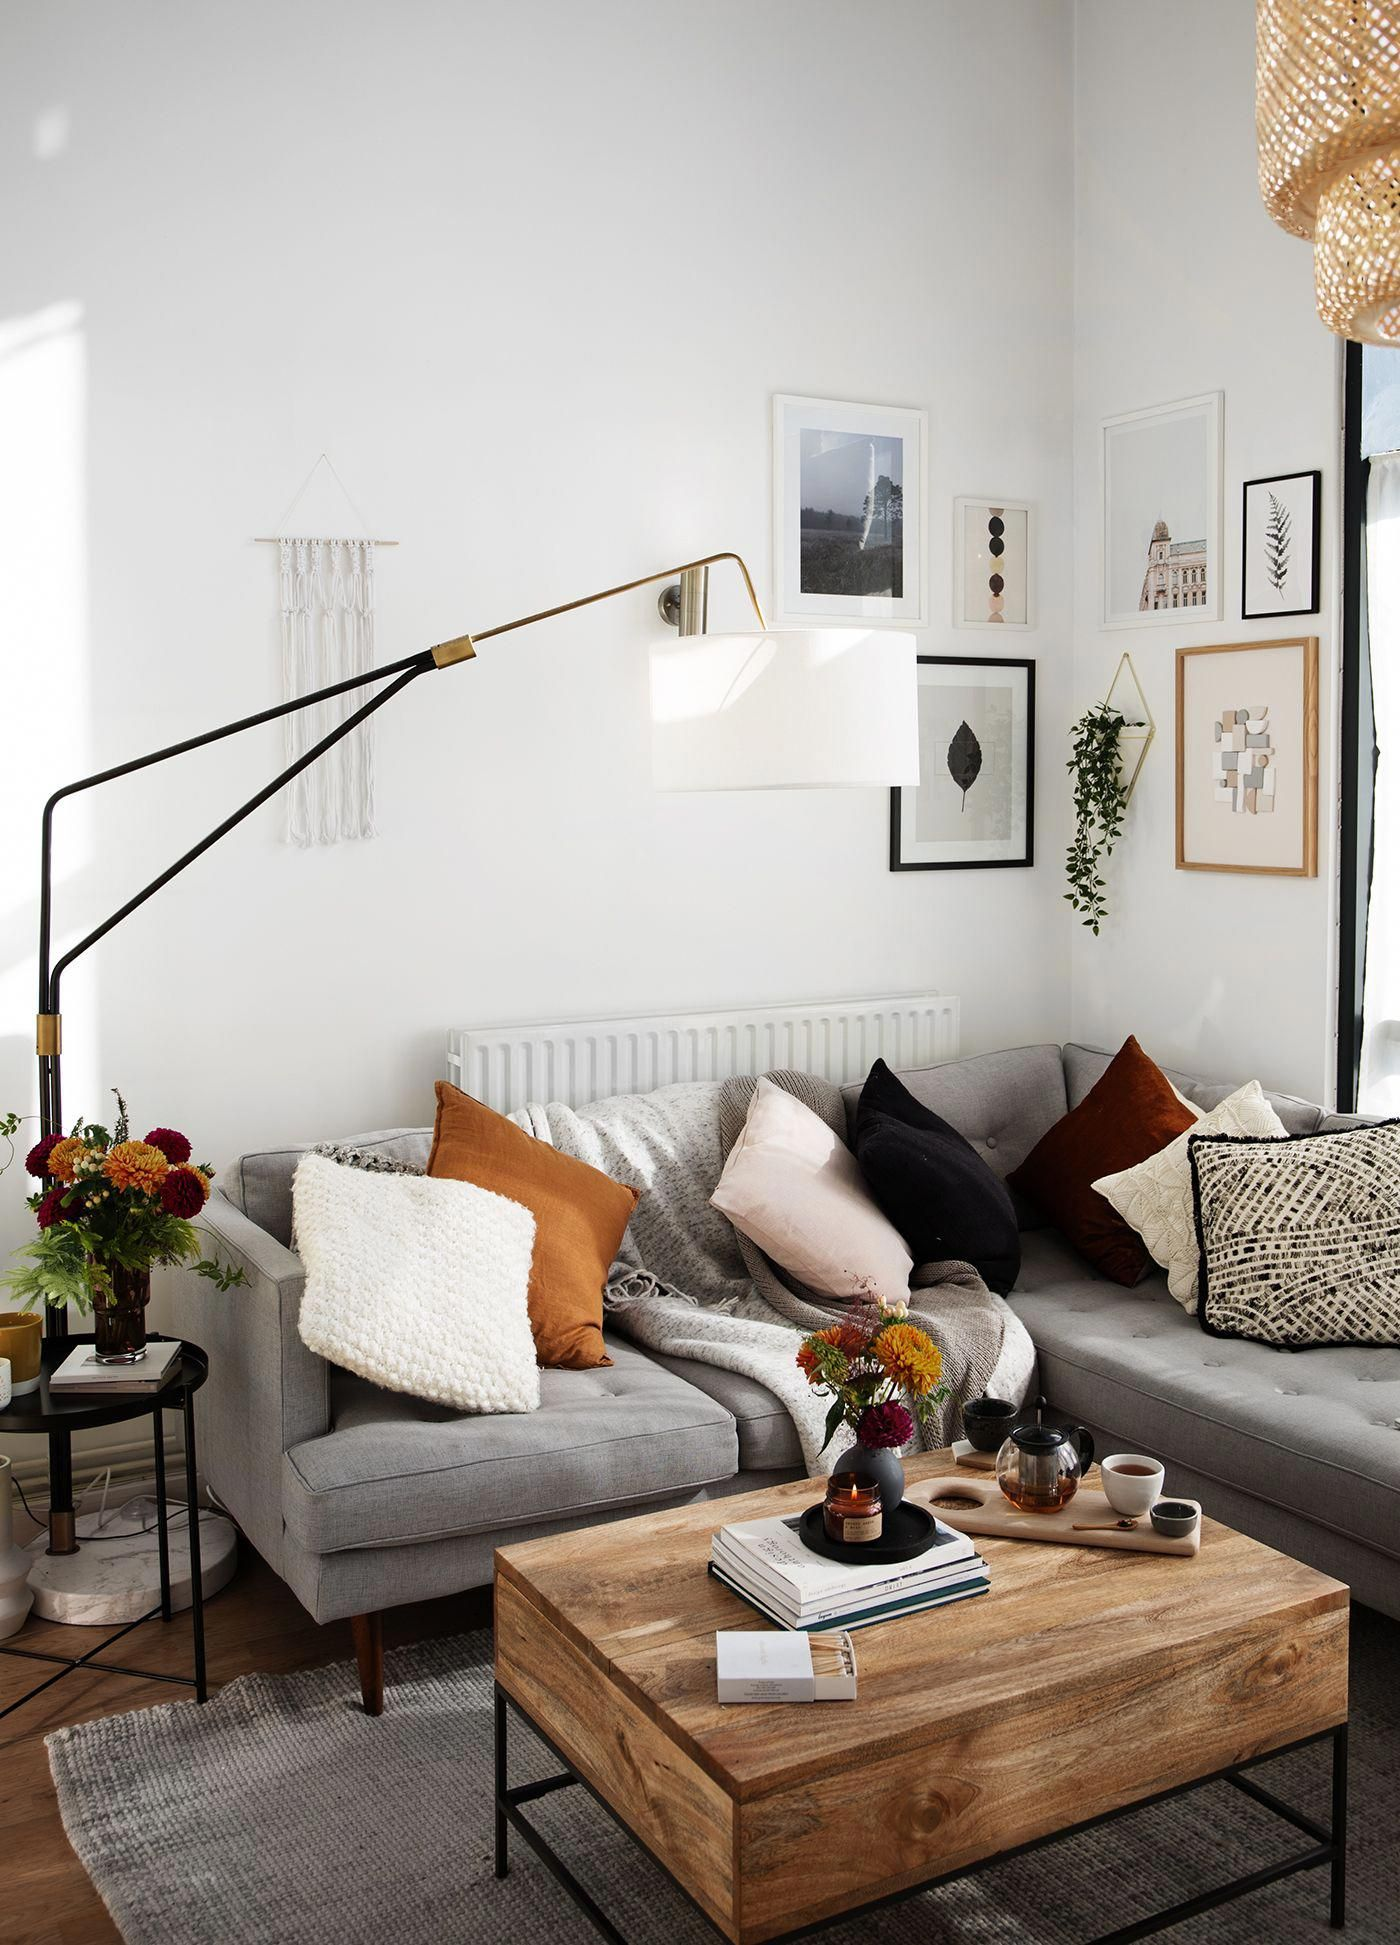 Living Room With A Bit Of A Rustic Industrial Feel Homedecor Livingroom Colors Throwpillow Living Room Scandinavian Living Room Inspo Living Room Interior